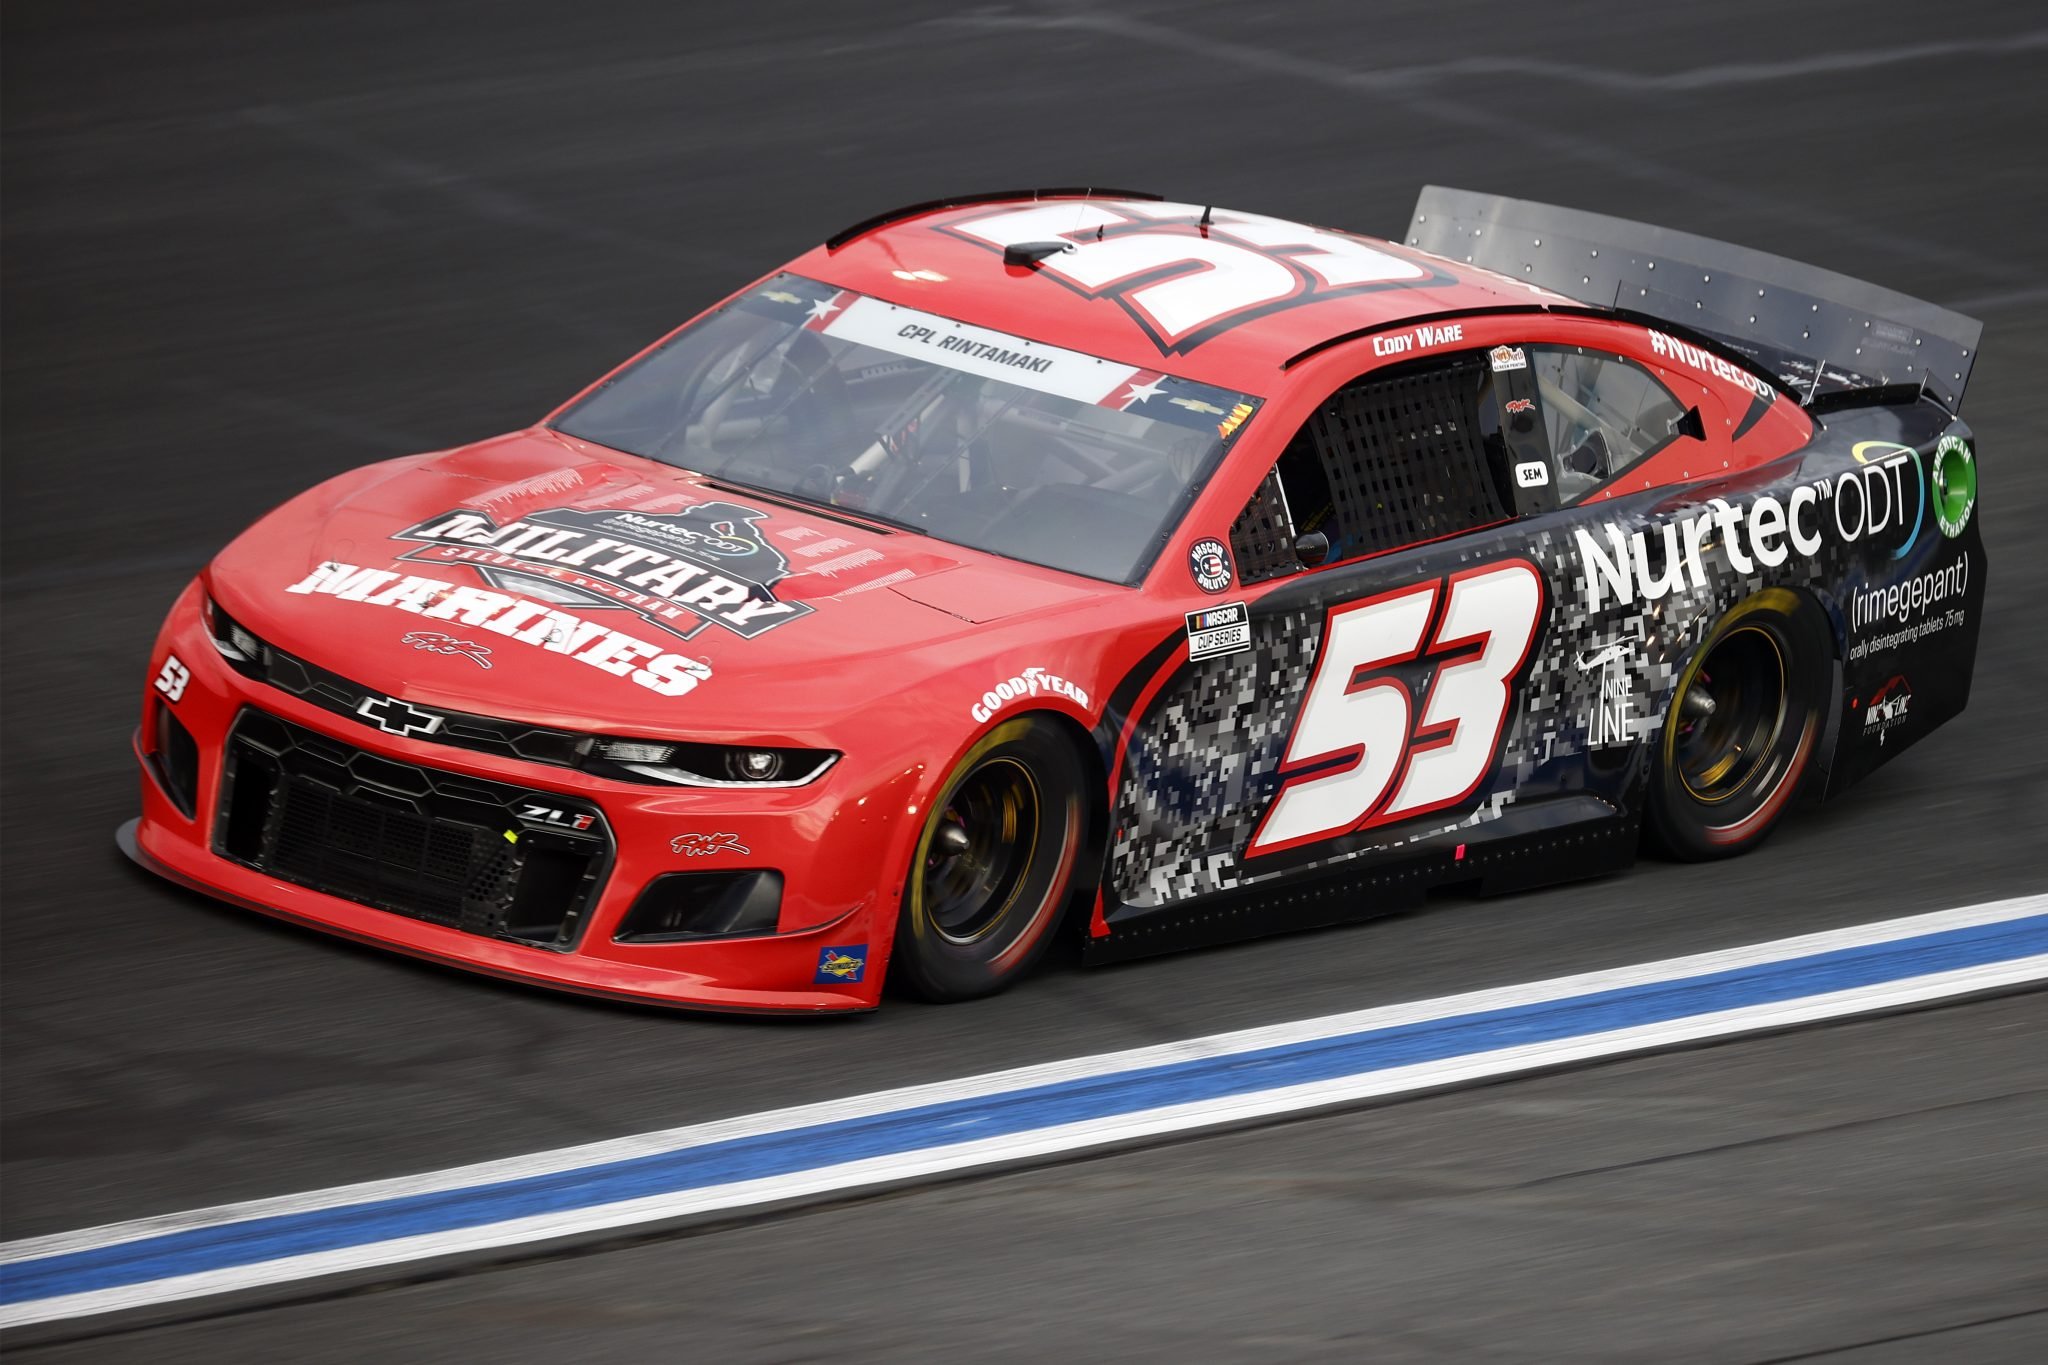 CONCORD, NORTH CAROLINA - MAY 28: Cody Ware, driver of the #53 US Marines Military Salutes Ford, drives during practice for the NASCAR Cup Series Coca-Cola 600 at Charlotte Motor Speedway on May 28, 2021 in Concord, North Carolina. (Photo by Jared C. Tilton/Getty Images) | Getty Images